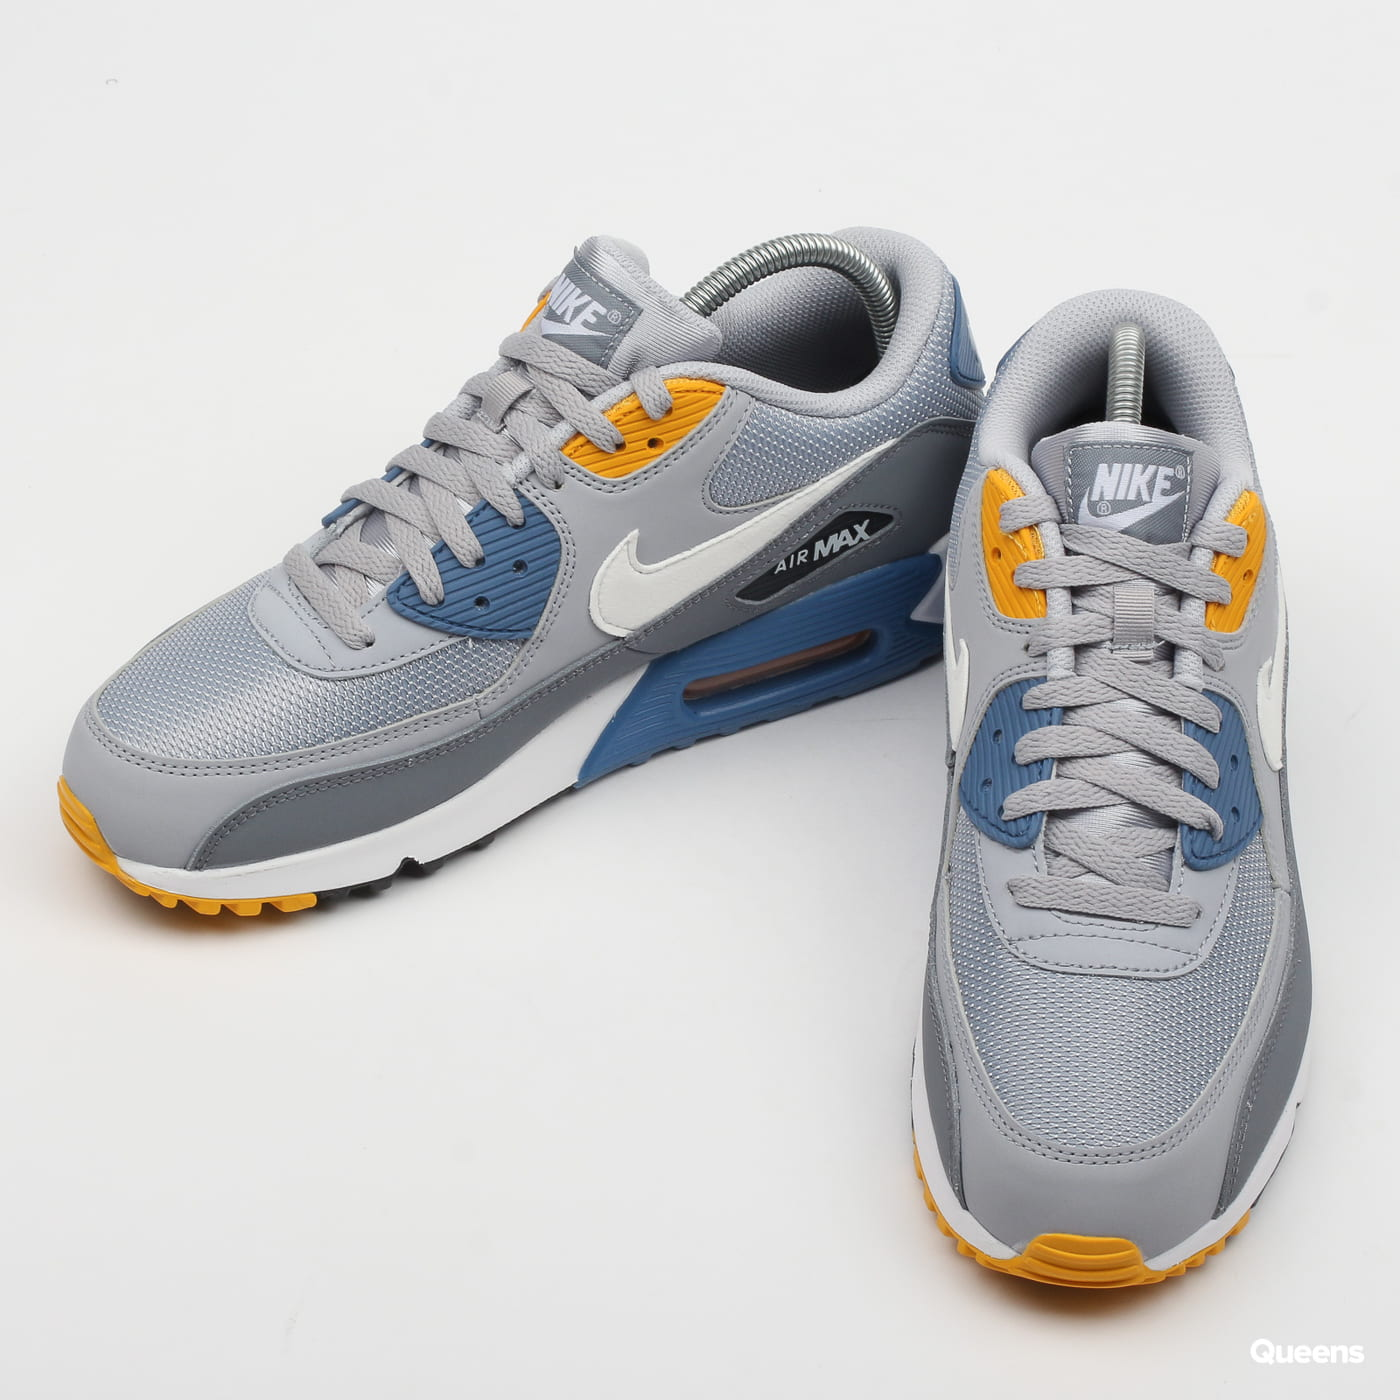 big sale 1cc60 6c96a Zoom in Zoom in Zoom in Zoom in Zoom in. Nike Air Max 90 Essential wolf grey    white - indigo storm